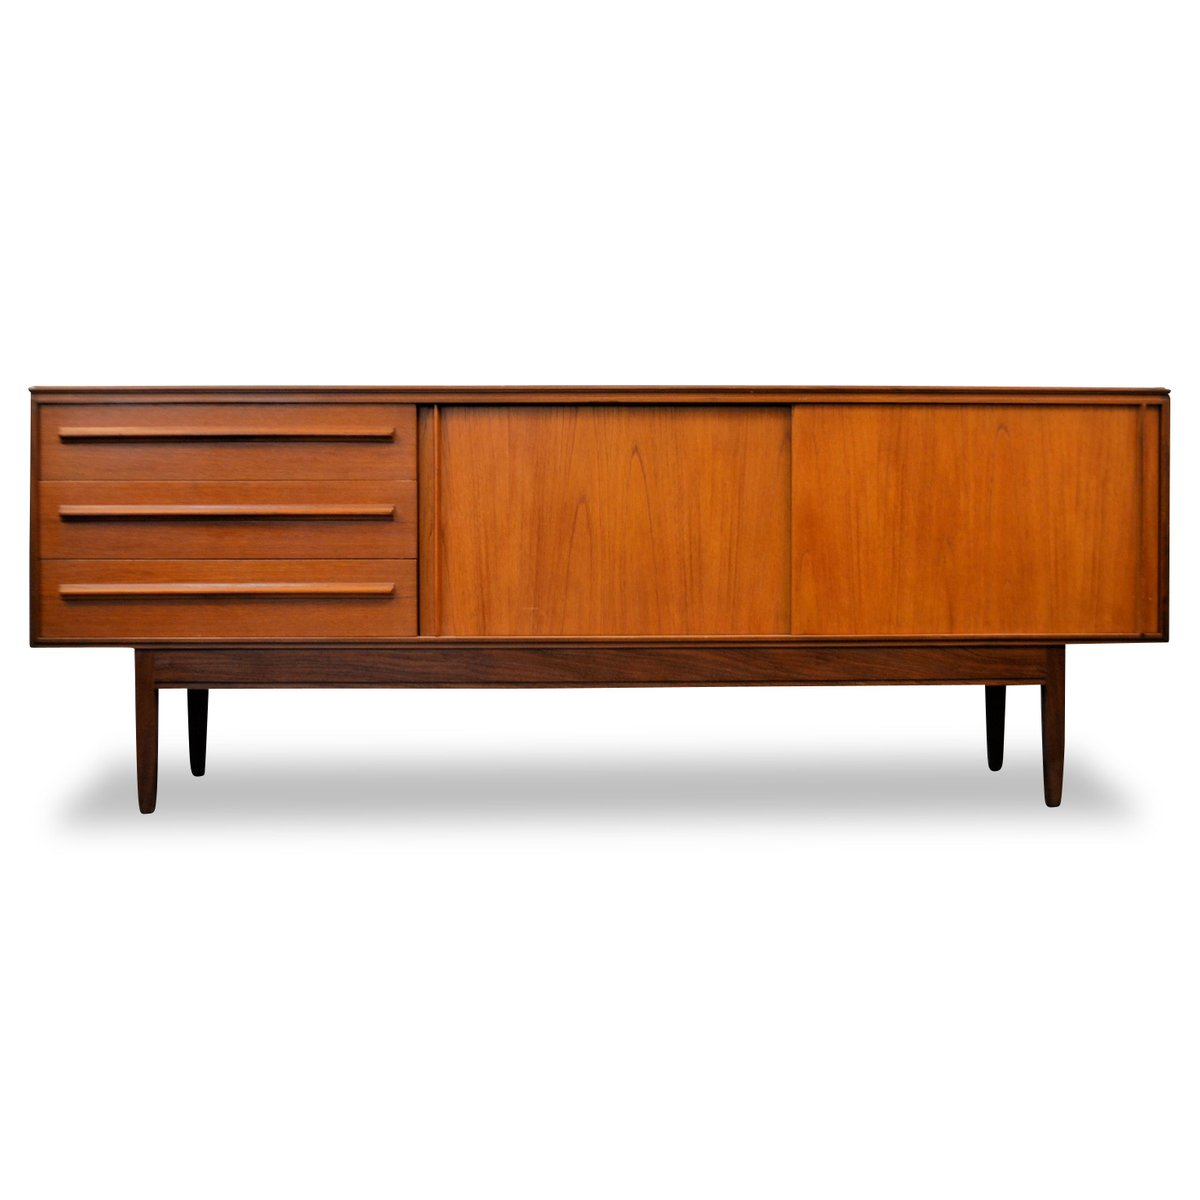 Mid century teak sideboard from white newton for sale at - Sideboard mid century ...